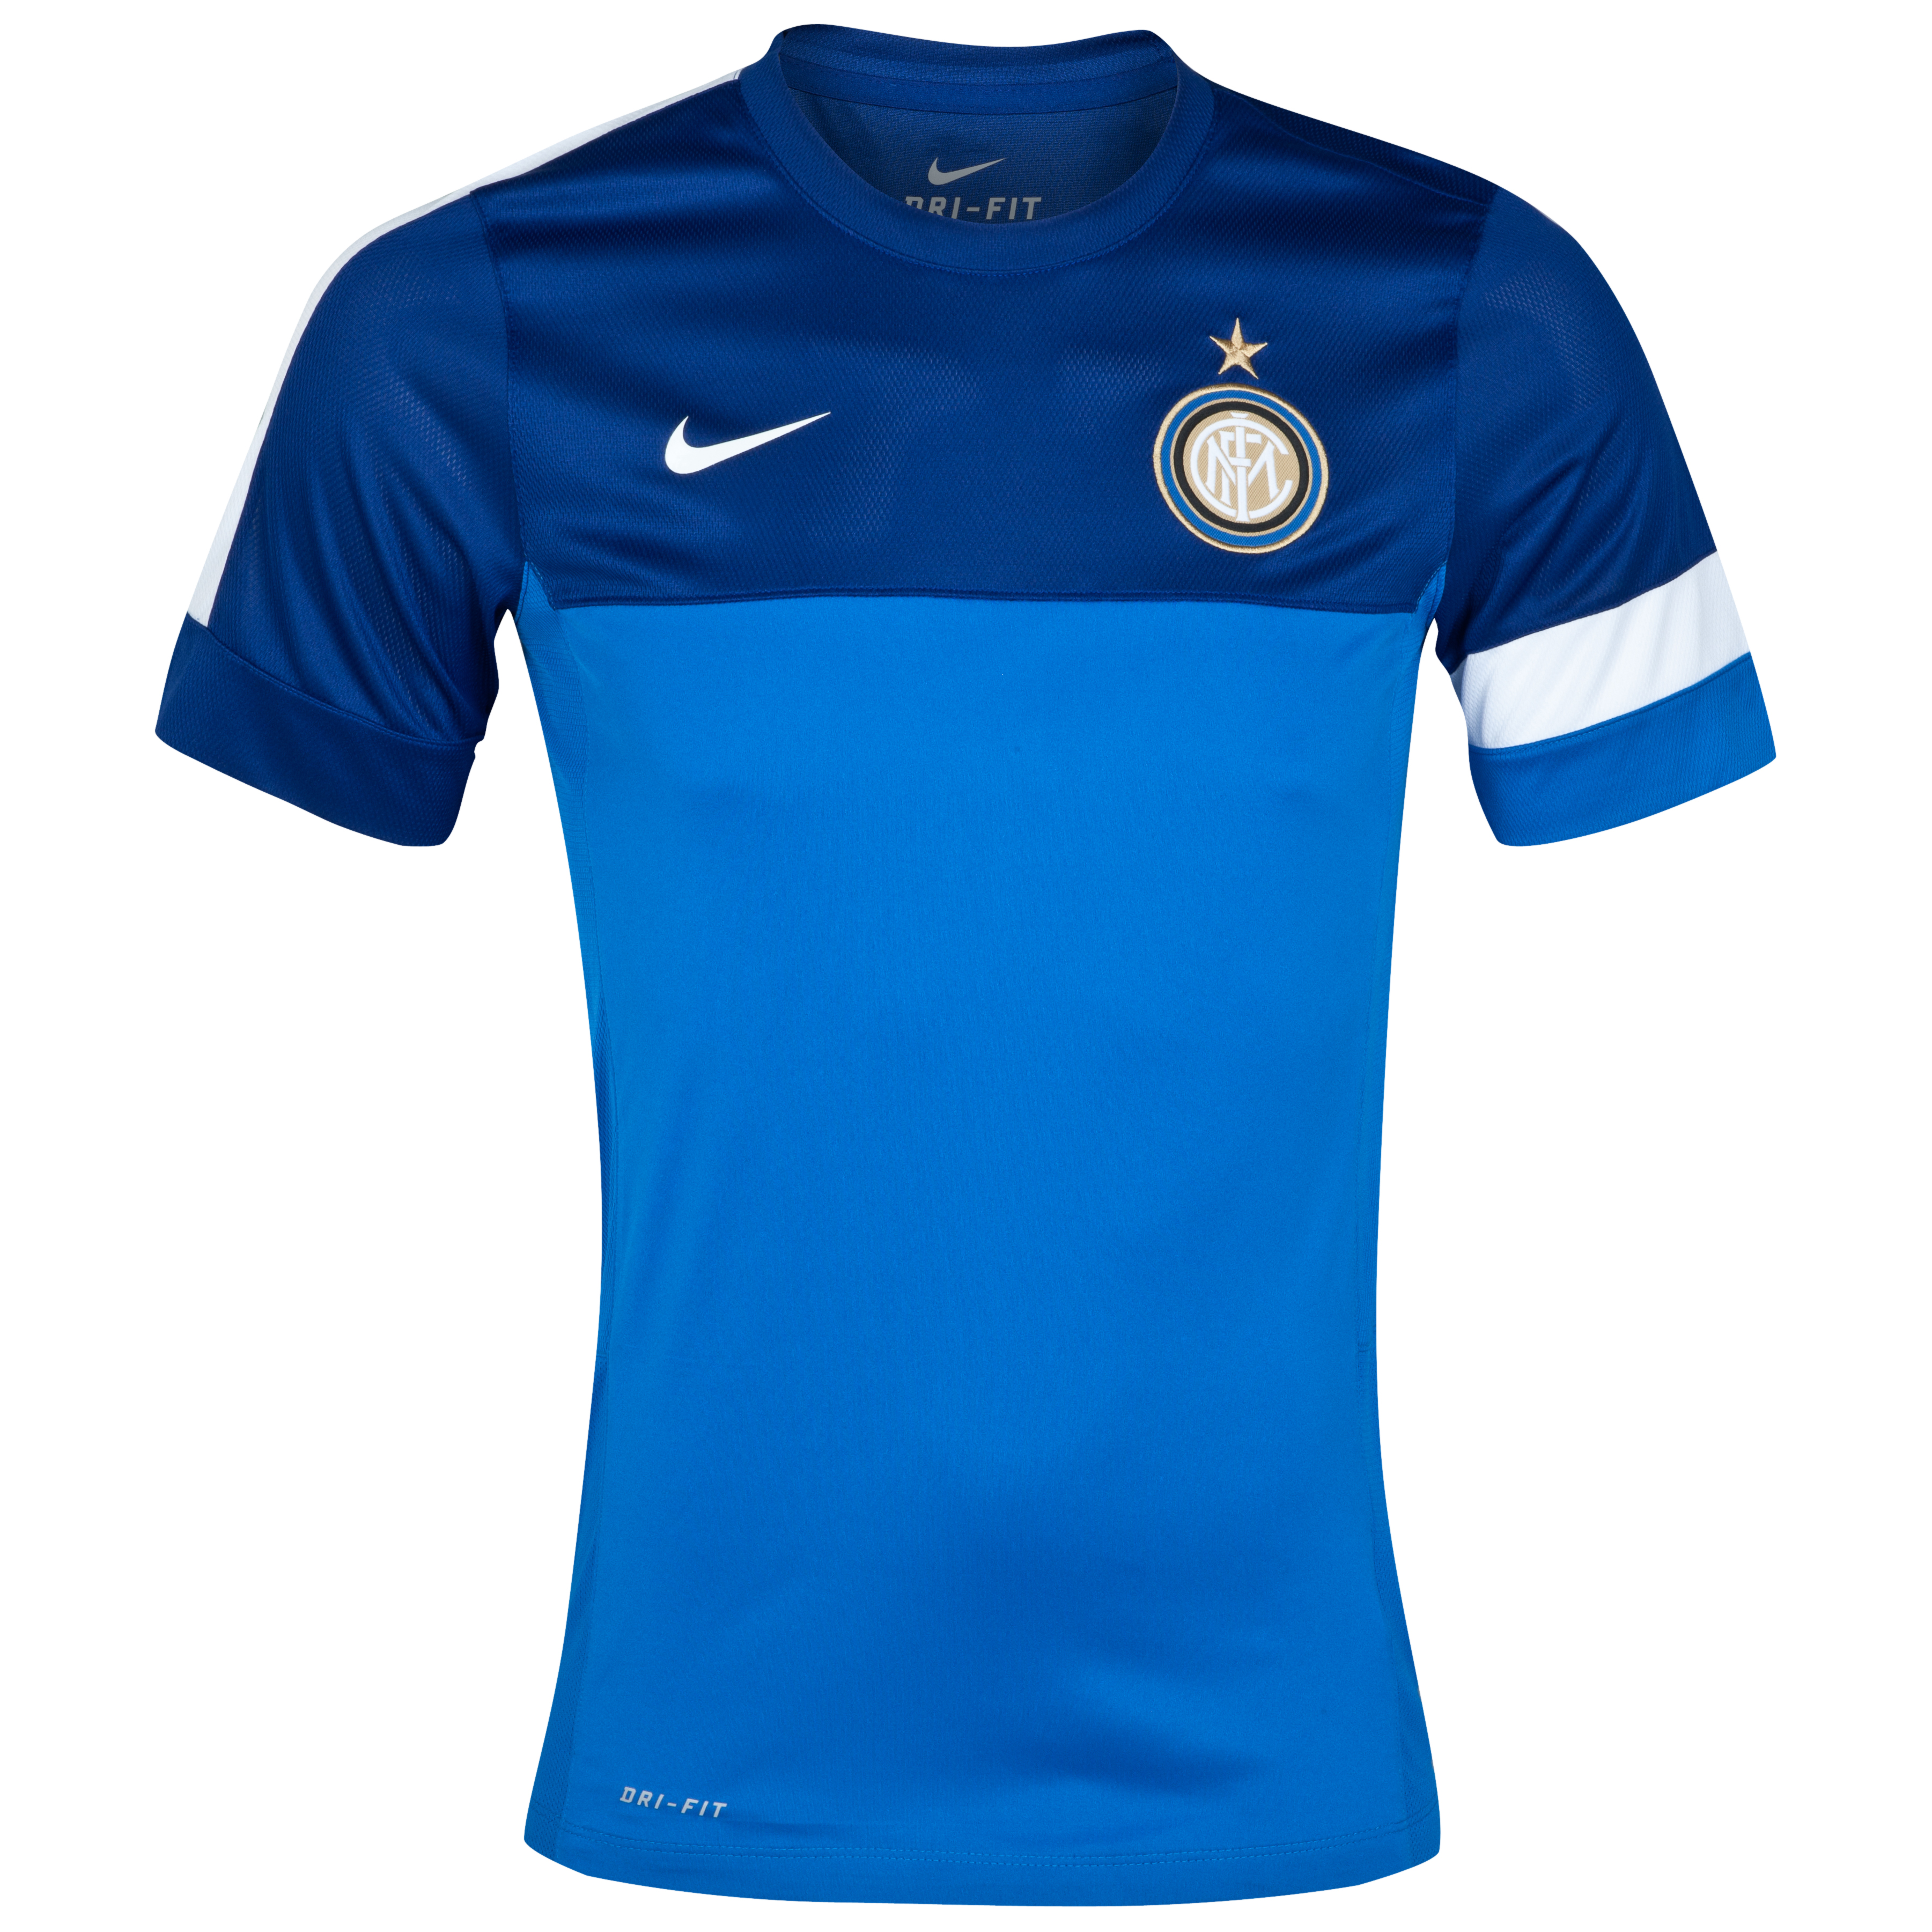 Inter Milan Training Top 1 - Signal Blue/Deep Royal Blue/White/White